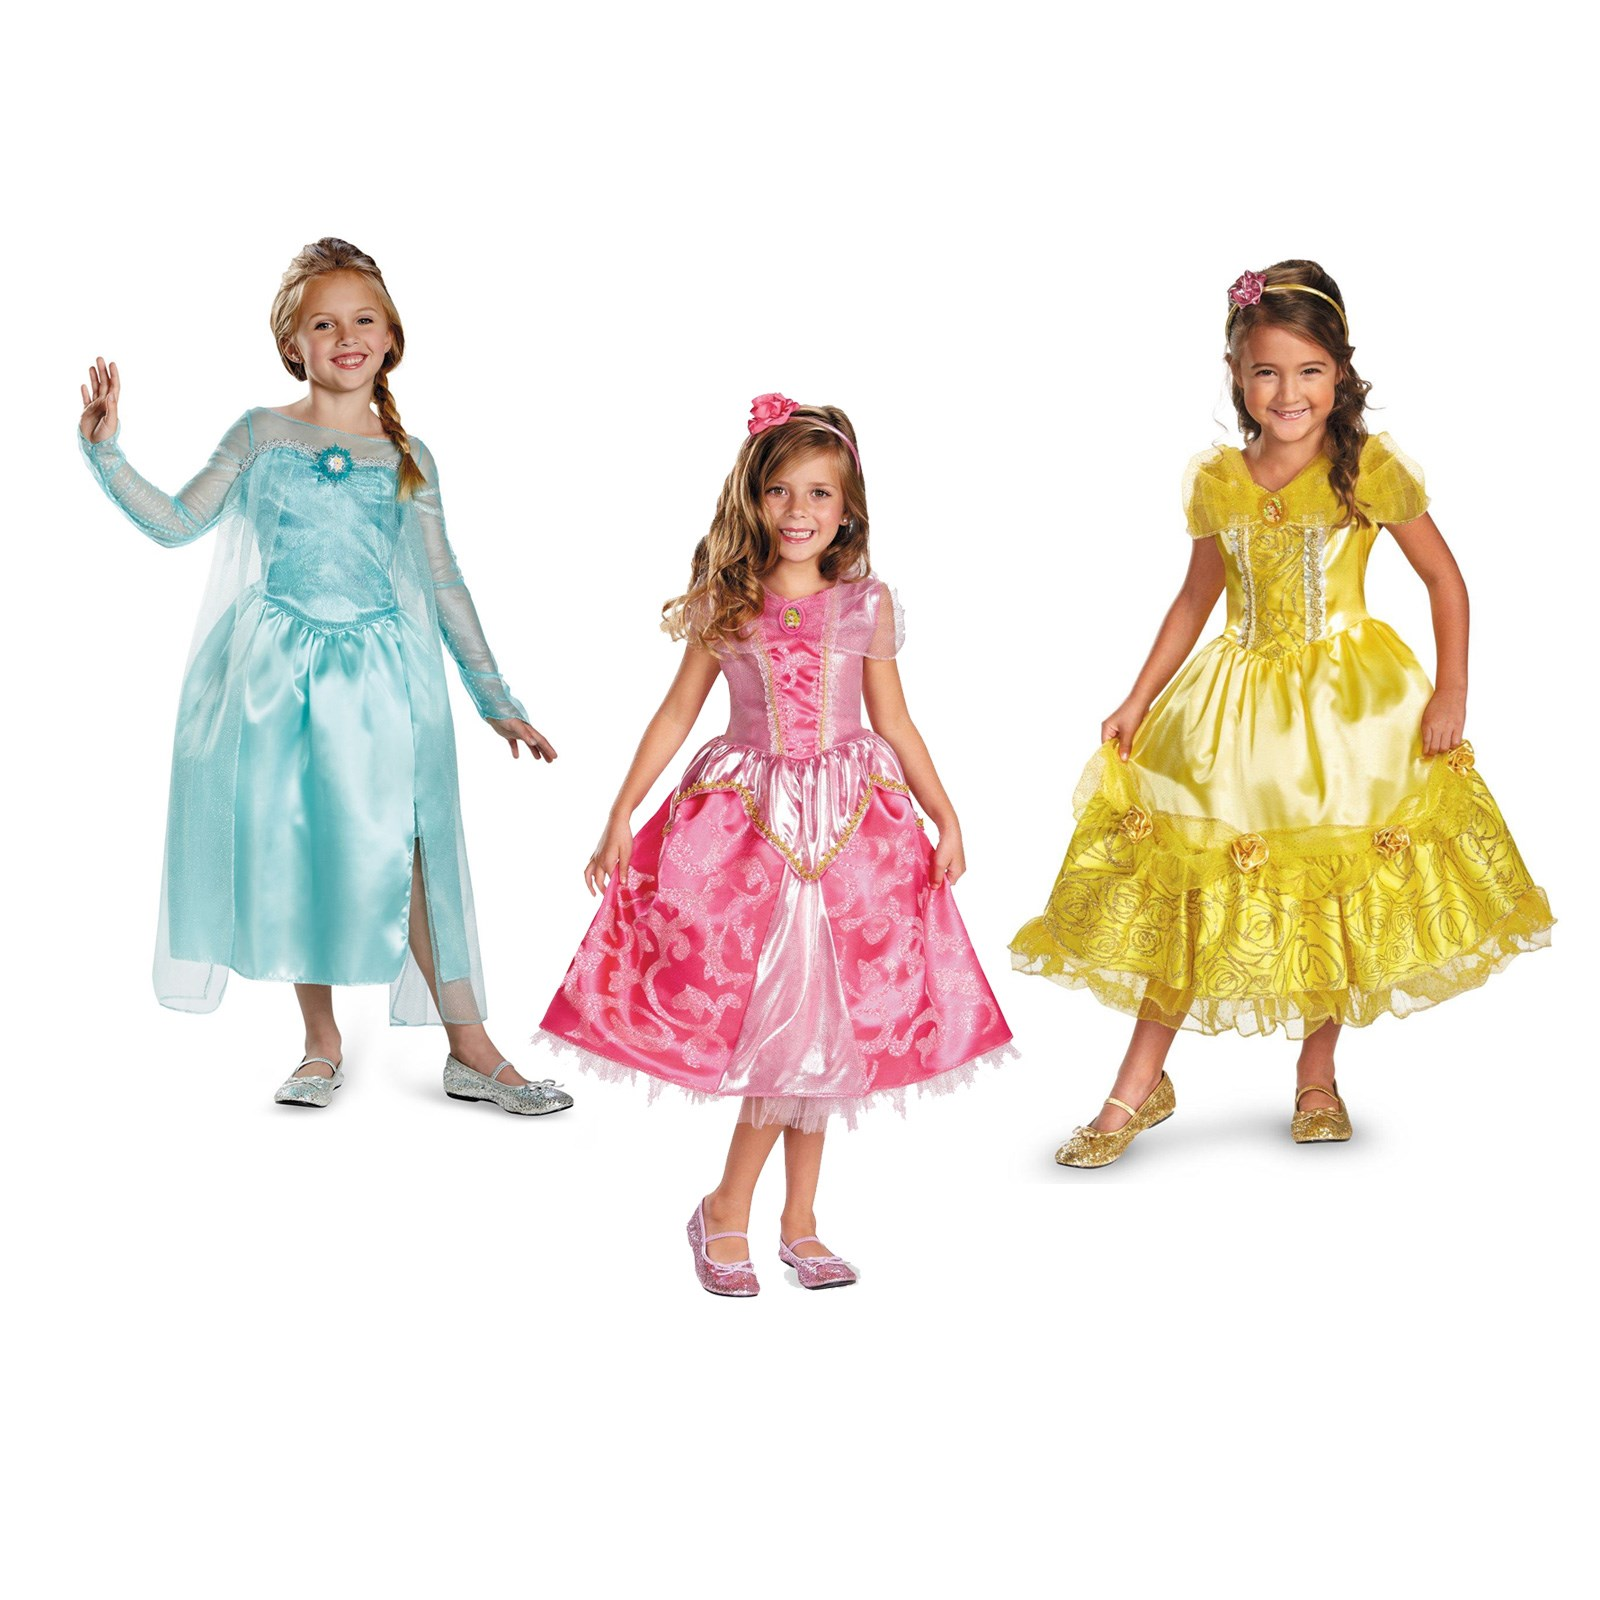 Shop Party City for girls' princess costumes at fabulous prices. Find deluxe princess gowns, light costumes, and more.